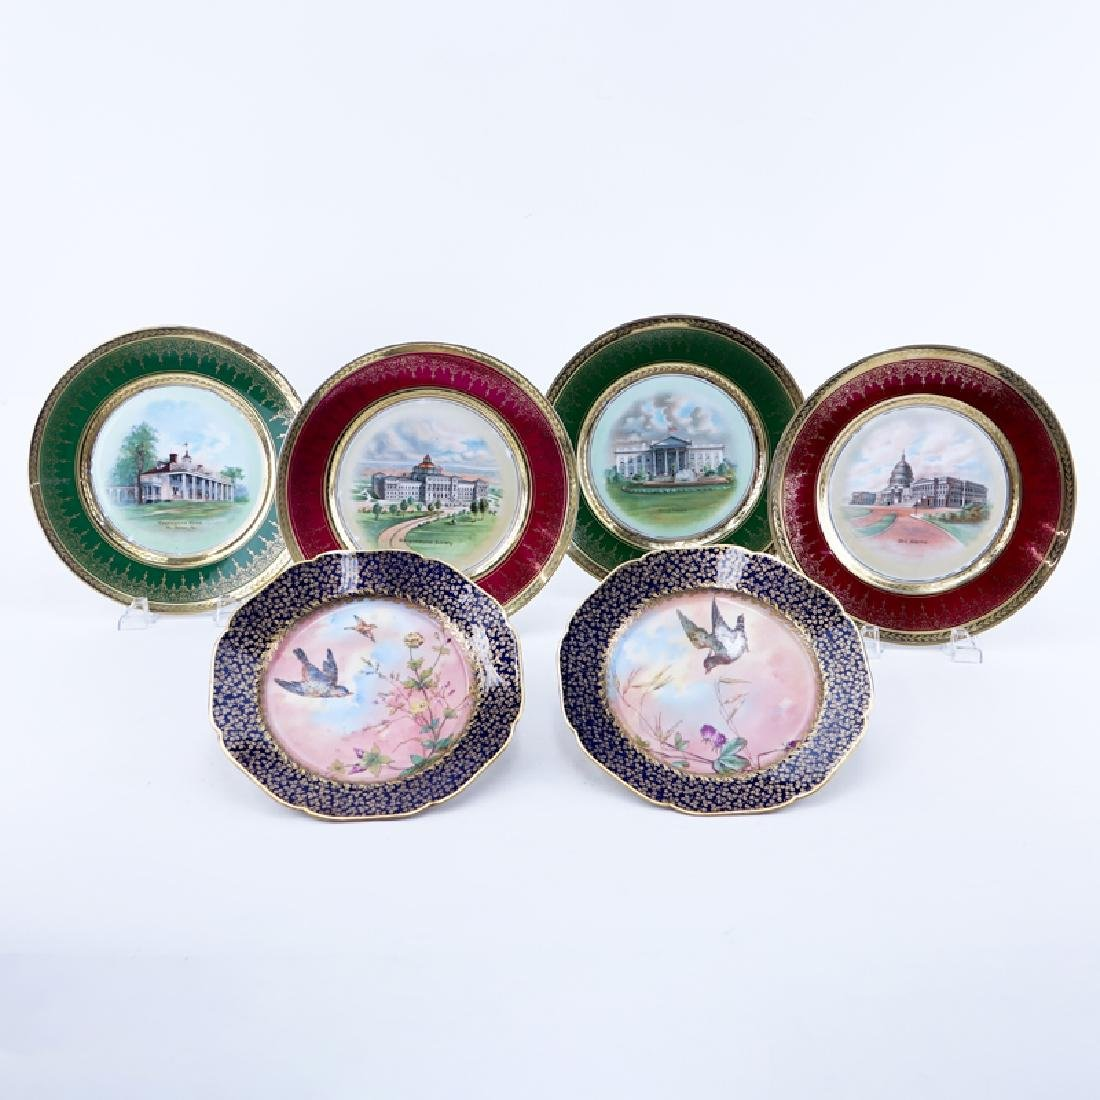 Collection of Six (6) Vintage Porcelain Cabinet Plates